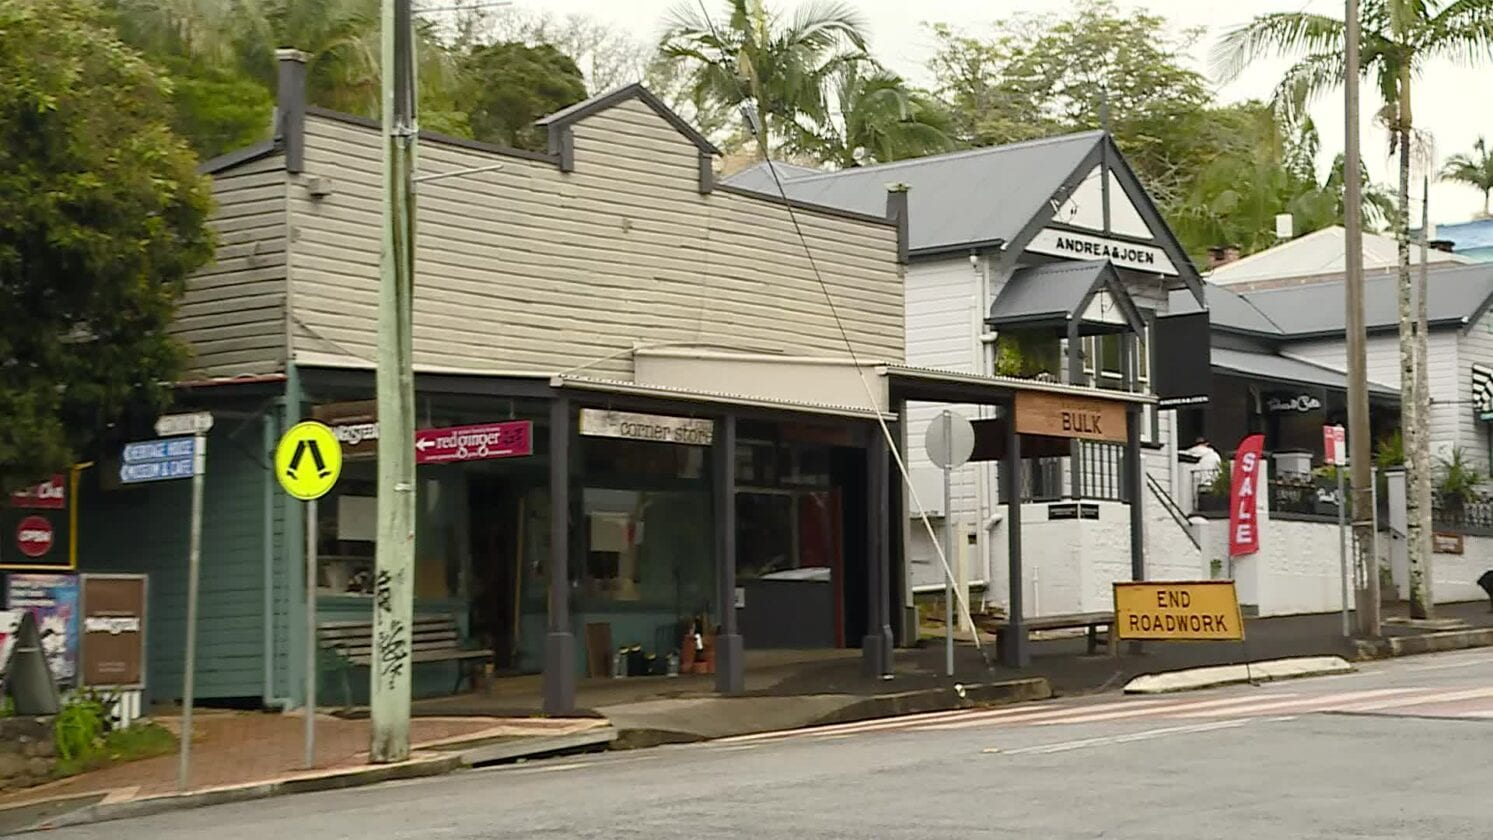 Power cut affected nearly 1500 customers in Bangalow